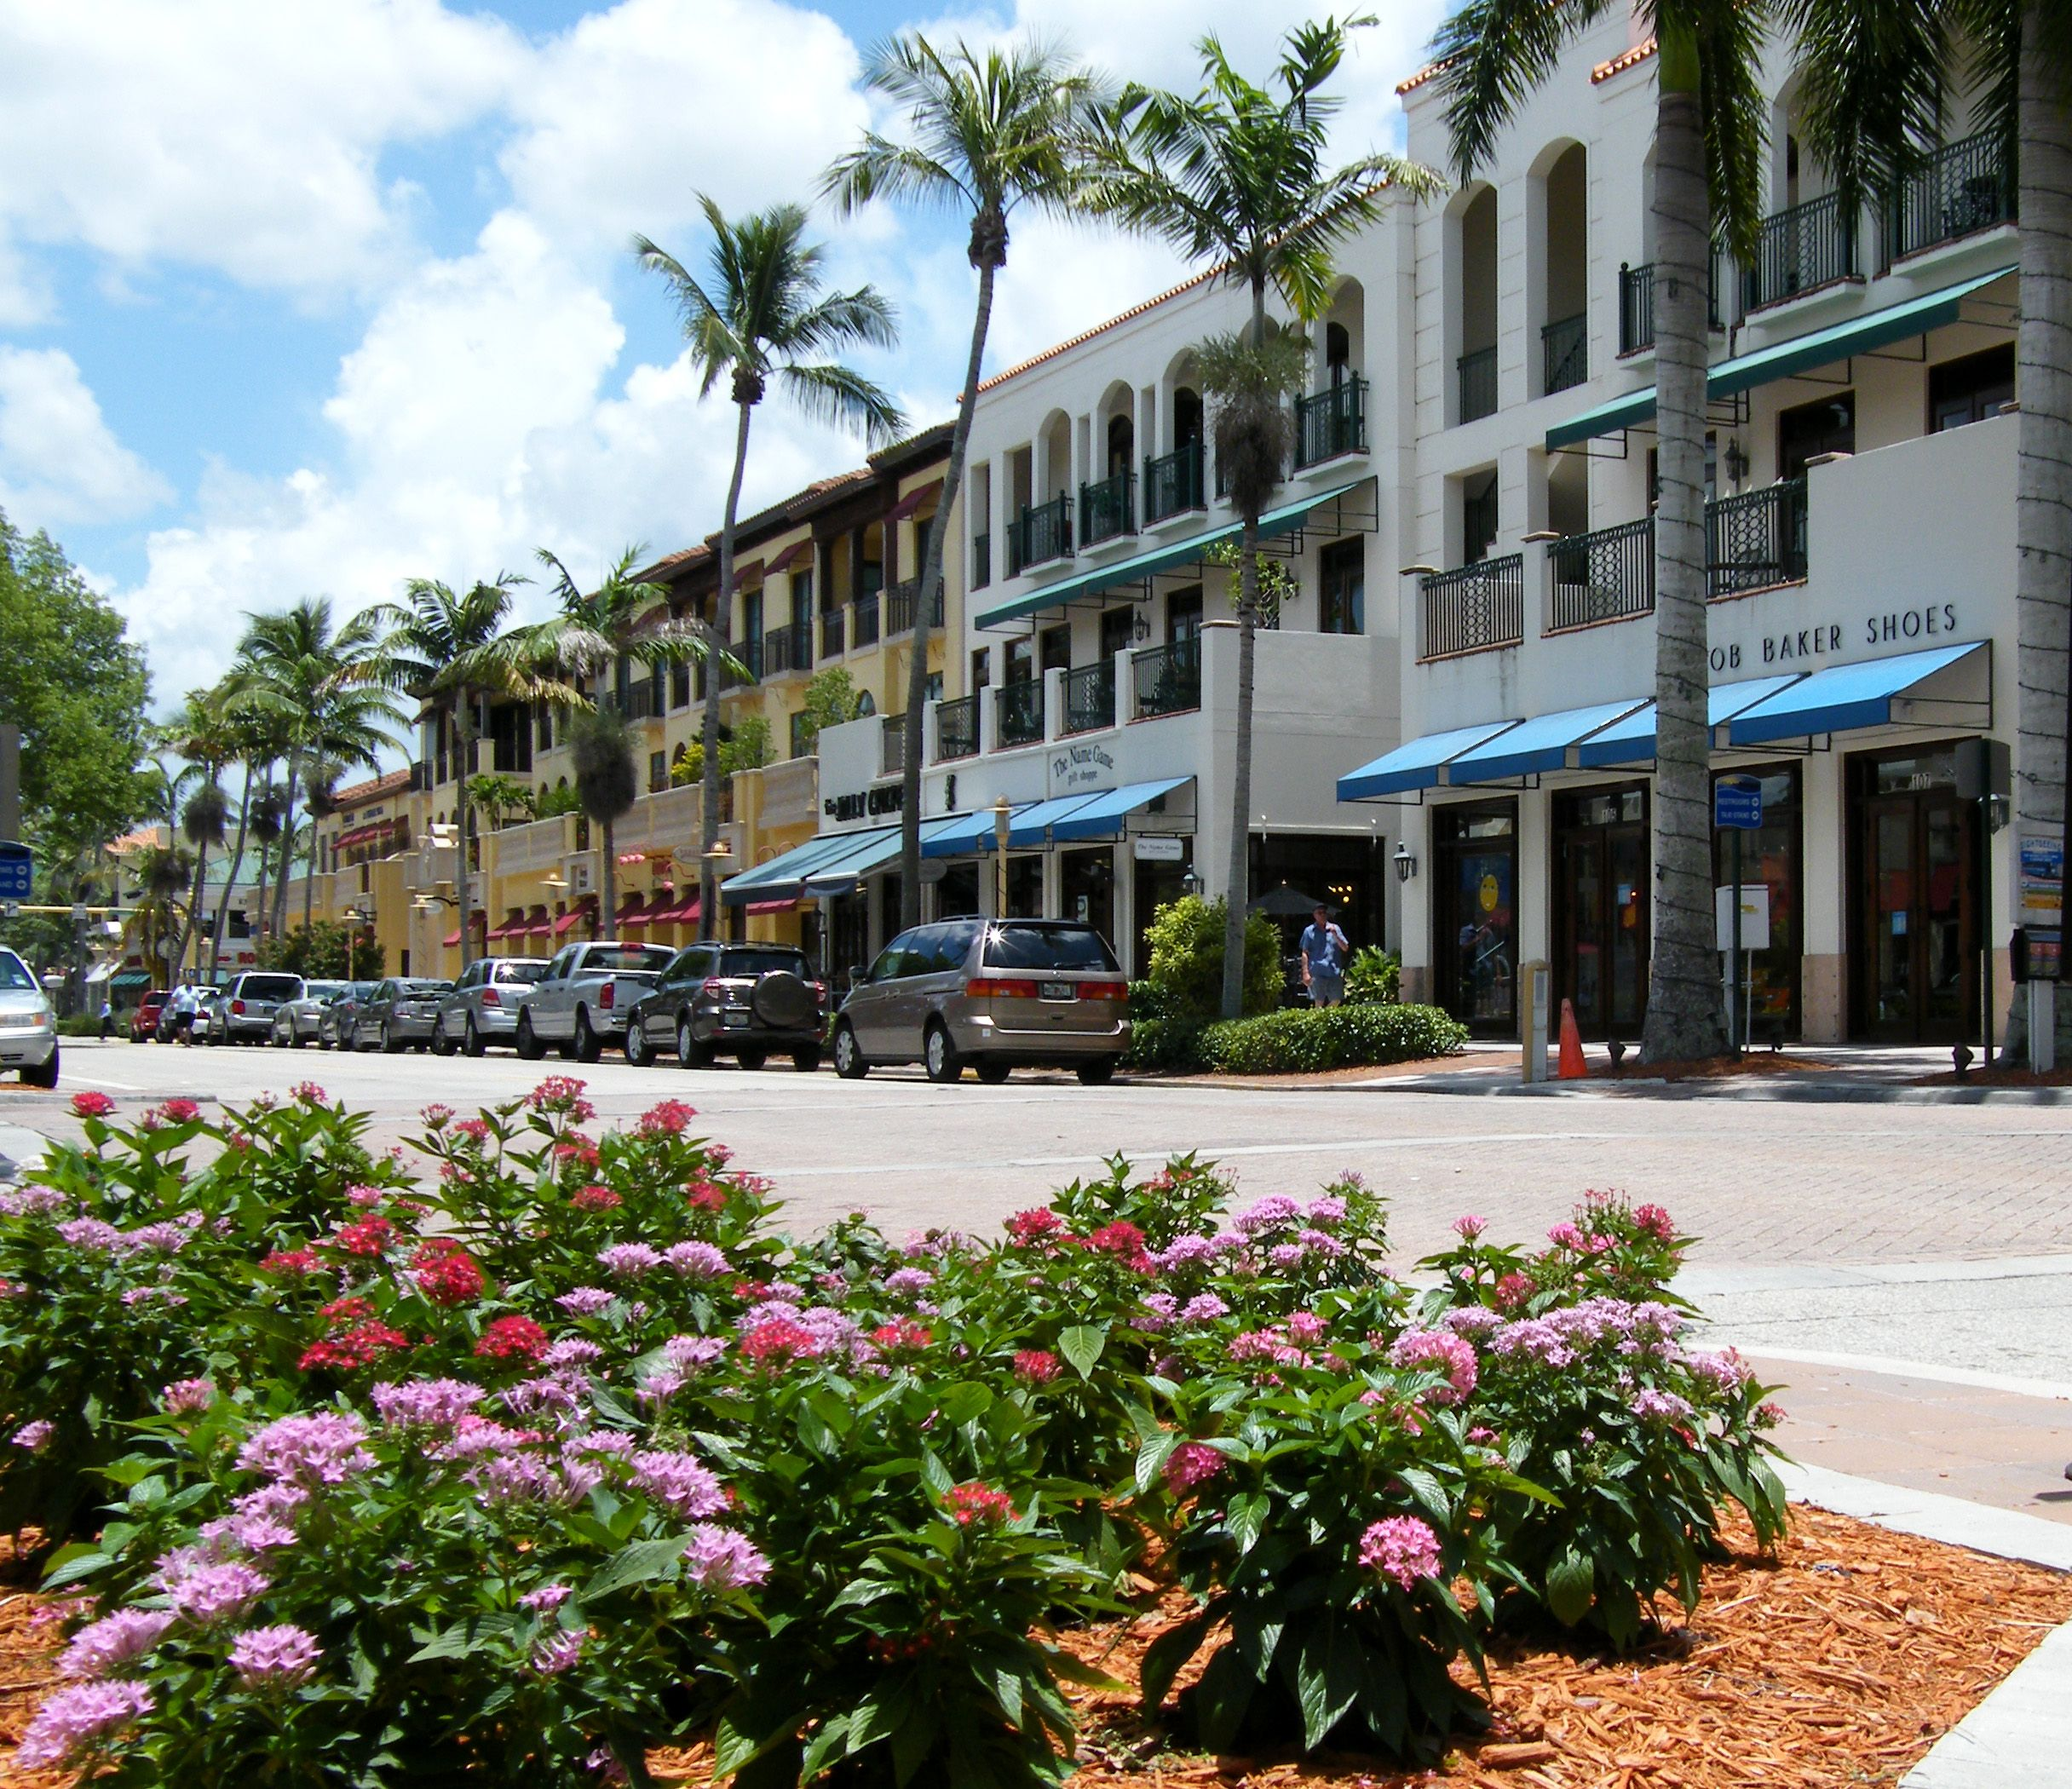 Vacations In Naples Fl: Downtown Naples, FL Is A Great Place To Eat, Shop, Stroll